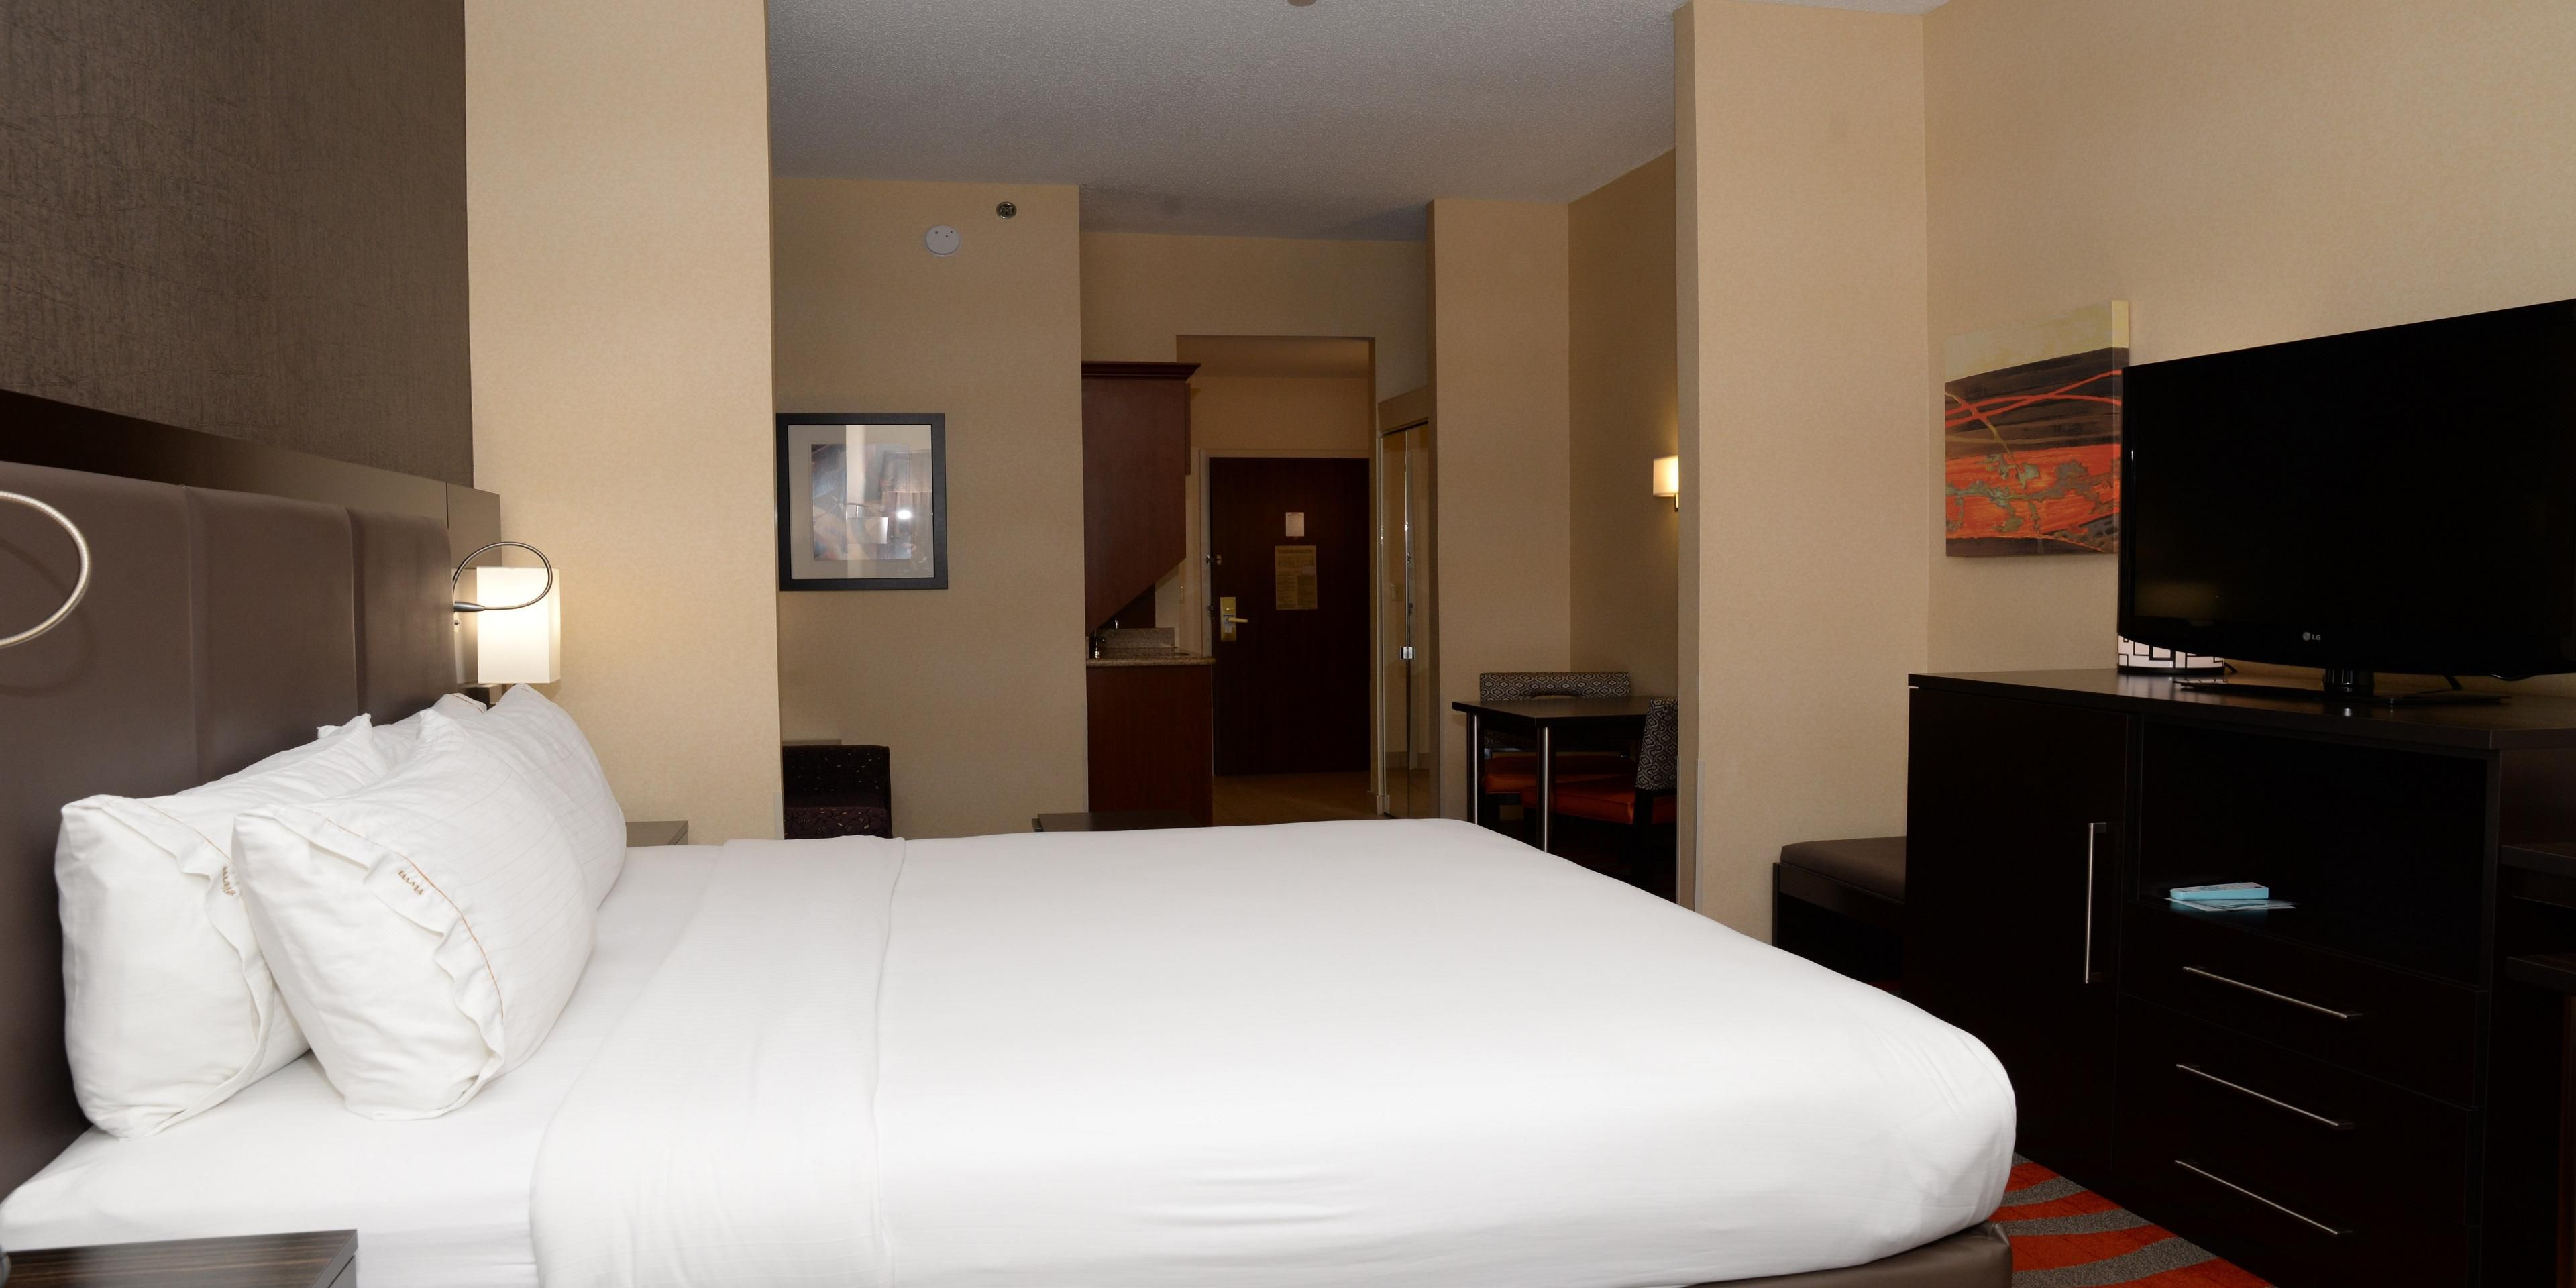 Holiday Inn Express And Suites Dayton 4373359864 2x1